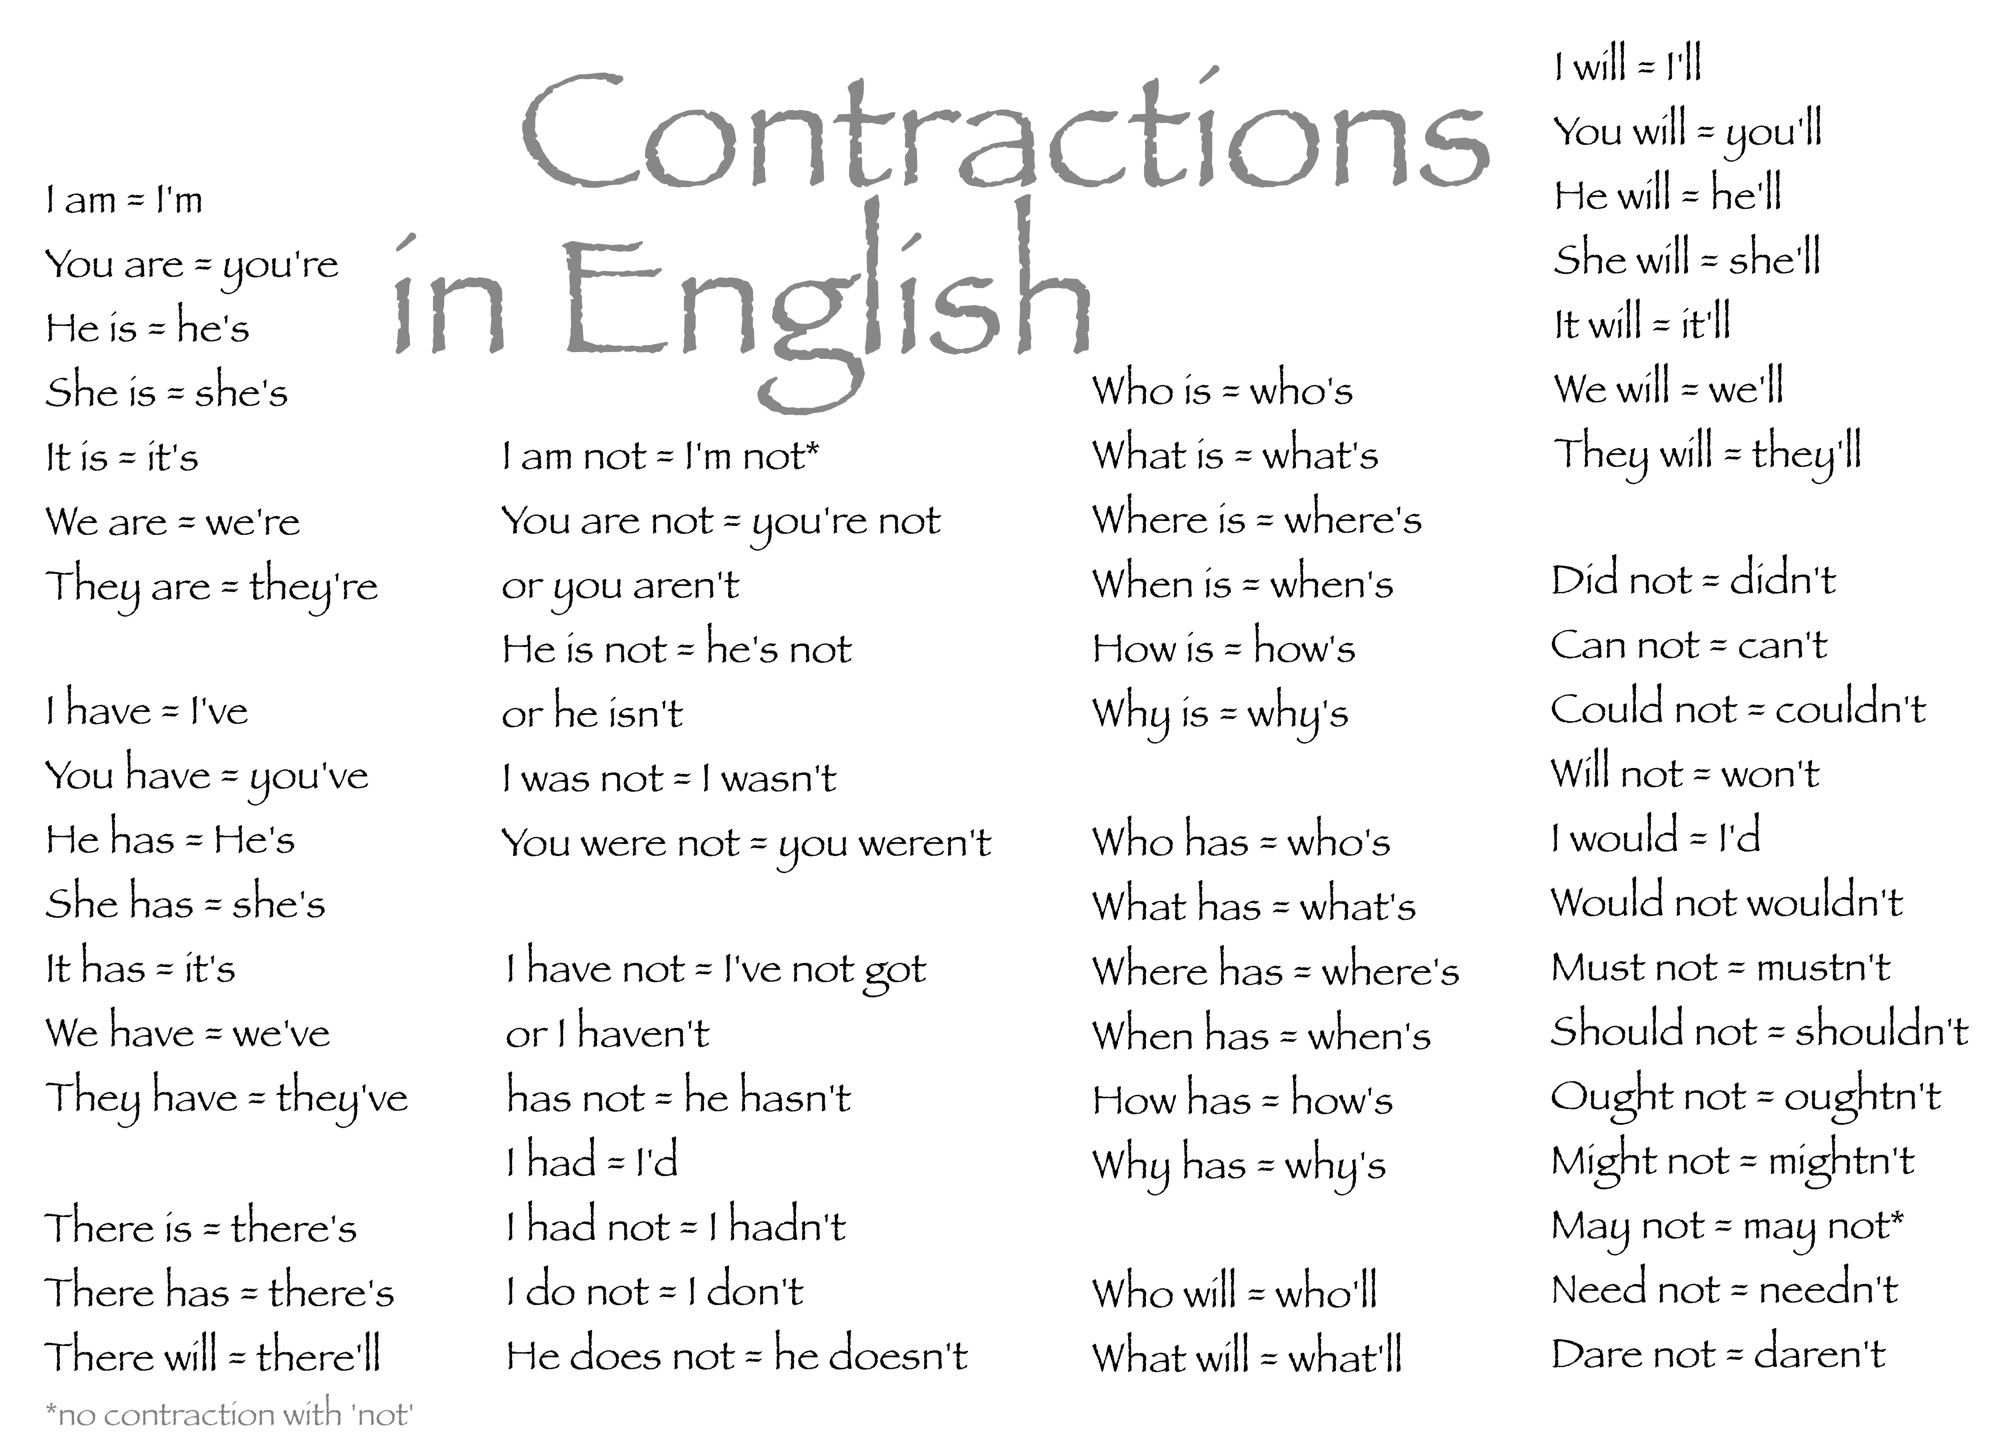 A List Of Contractions In English A Contraction Is A Part